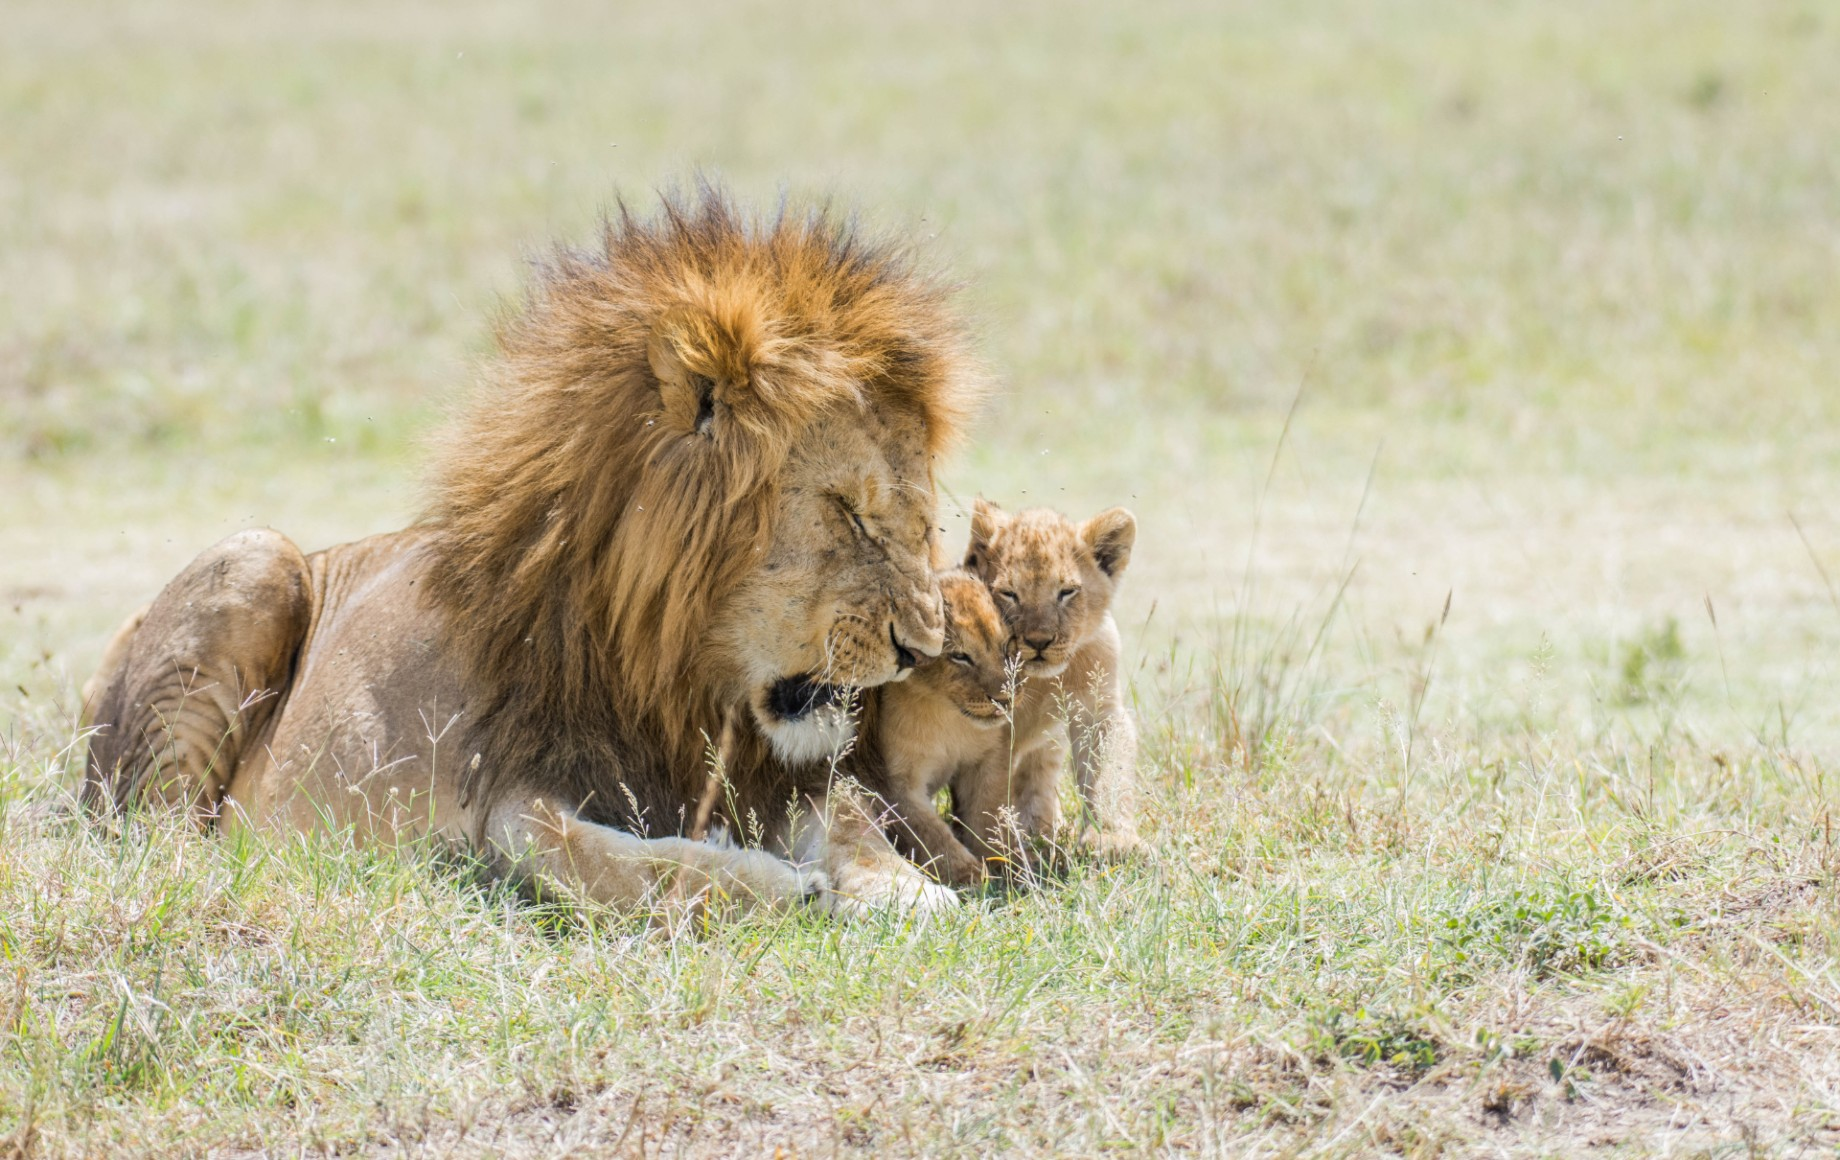 A lion and its cub